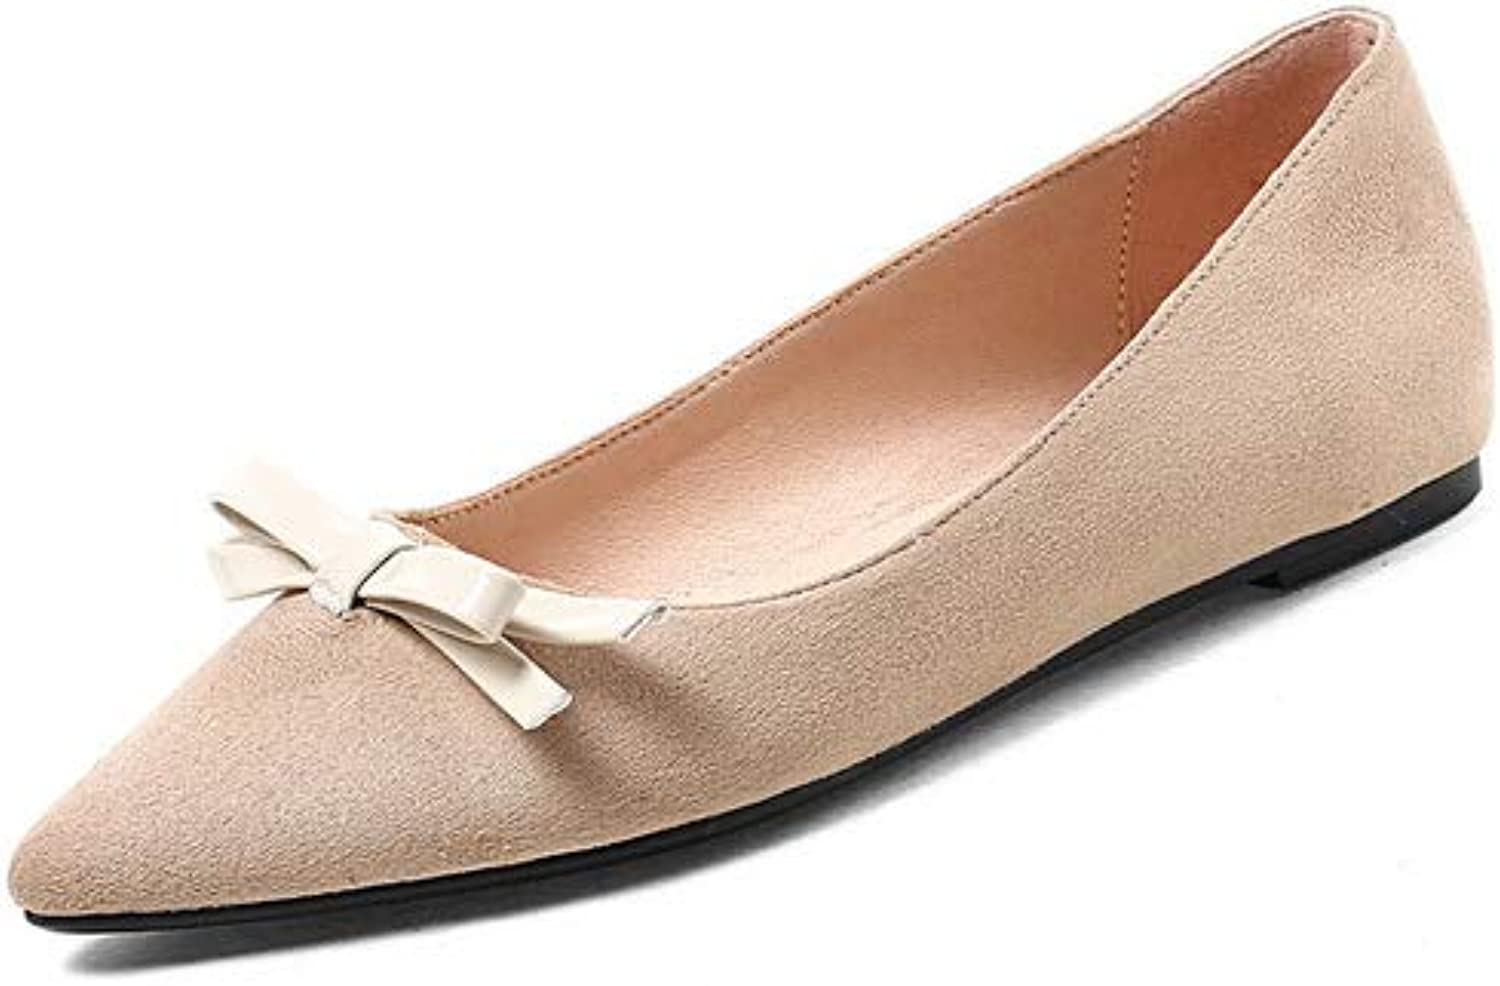 BalaMasa Womens Bows Solid Casual Leather Pumps shoes APL10480